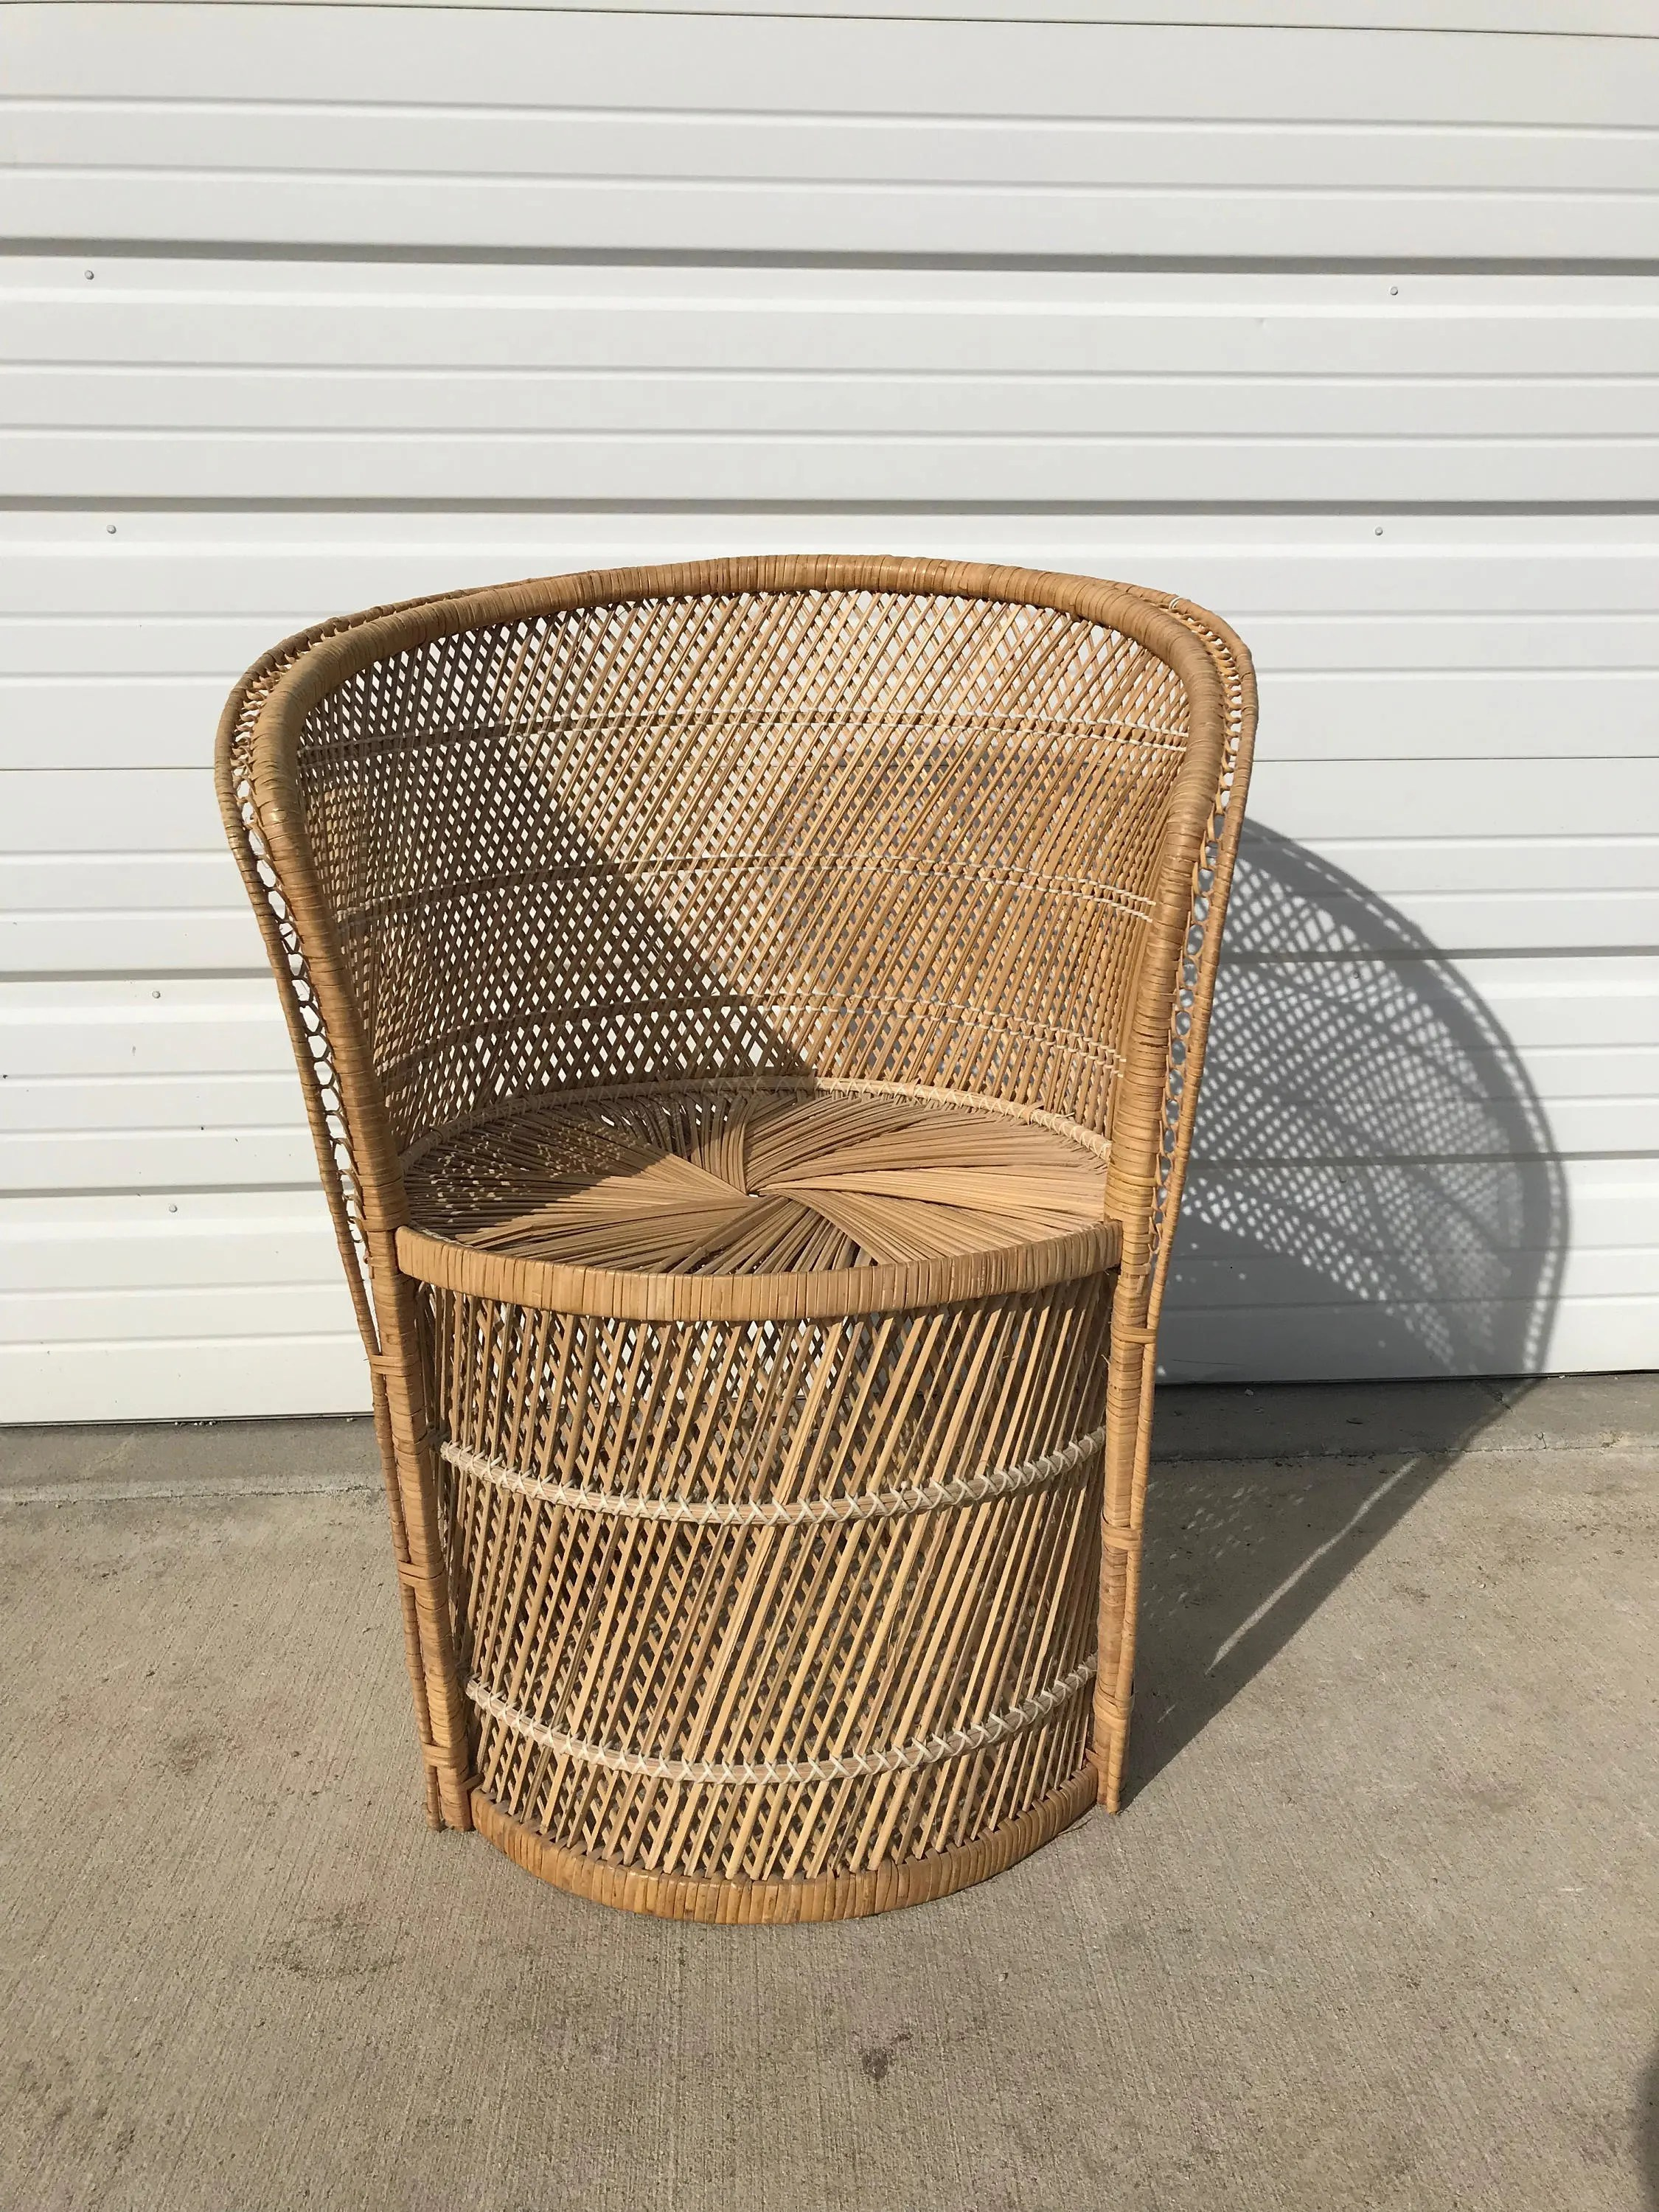 Rattan Accent Chair Vintage Rattan Chair Boho Chic Peacock Chair Fan Regency